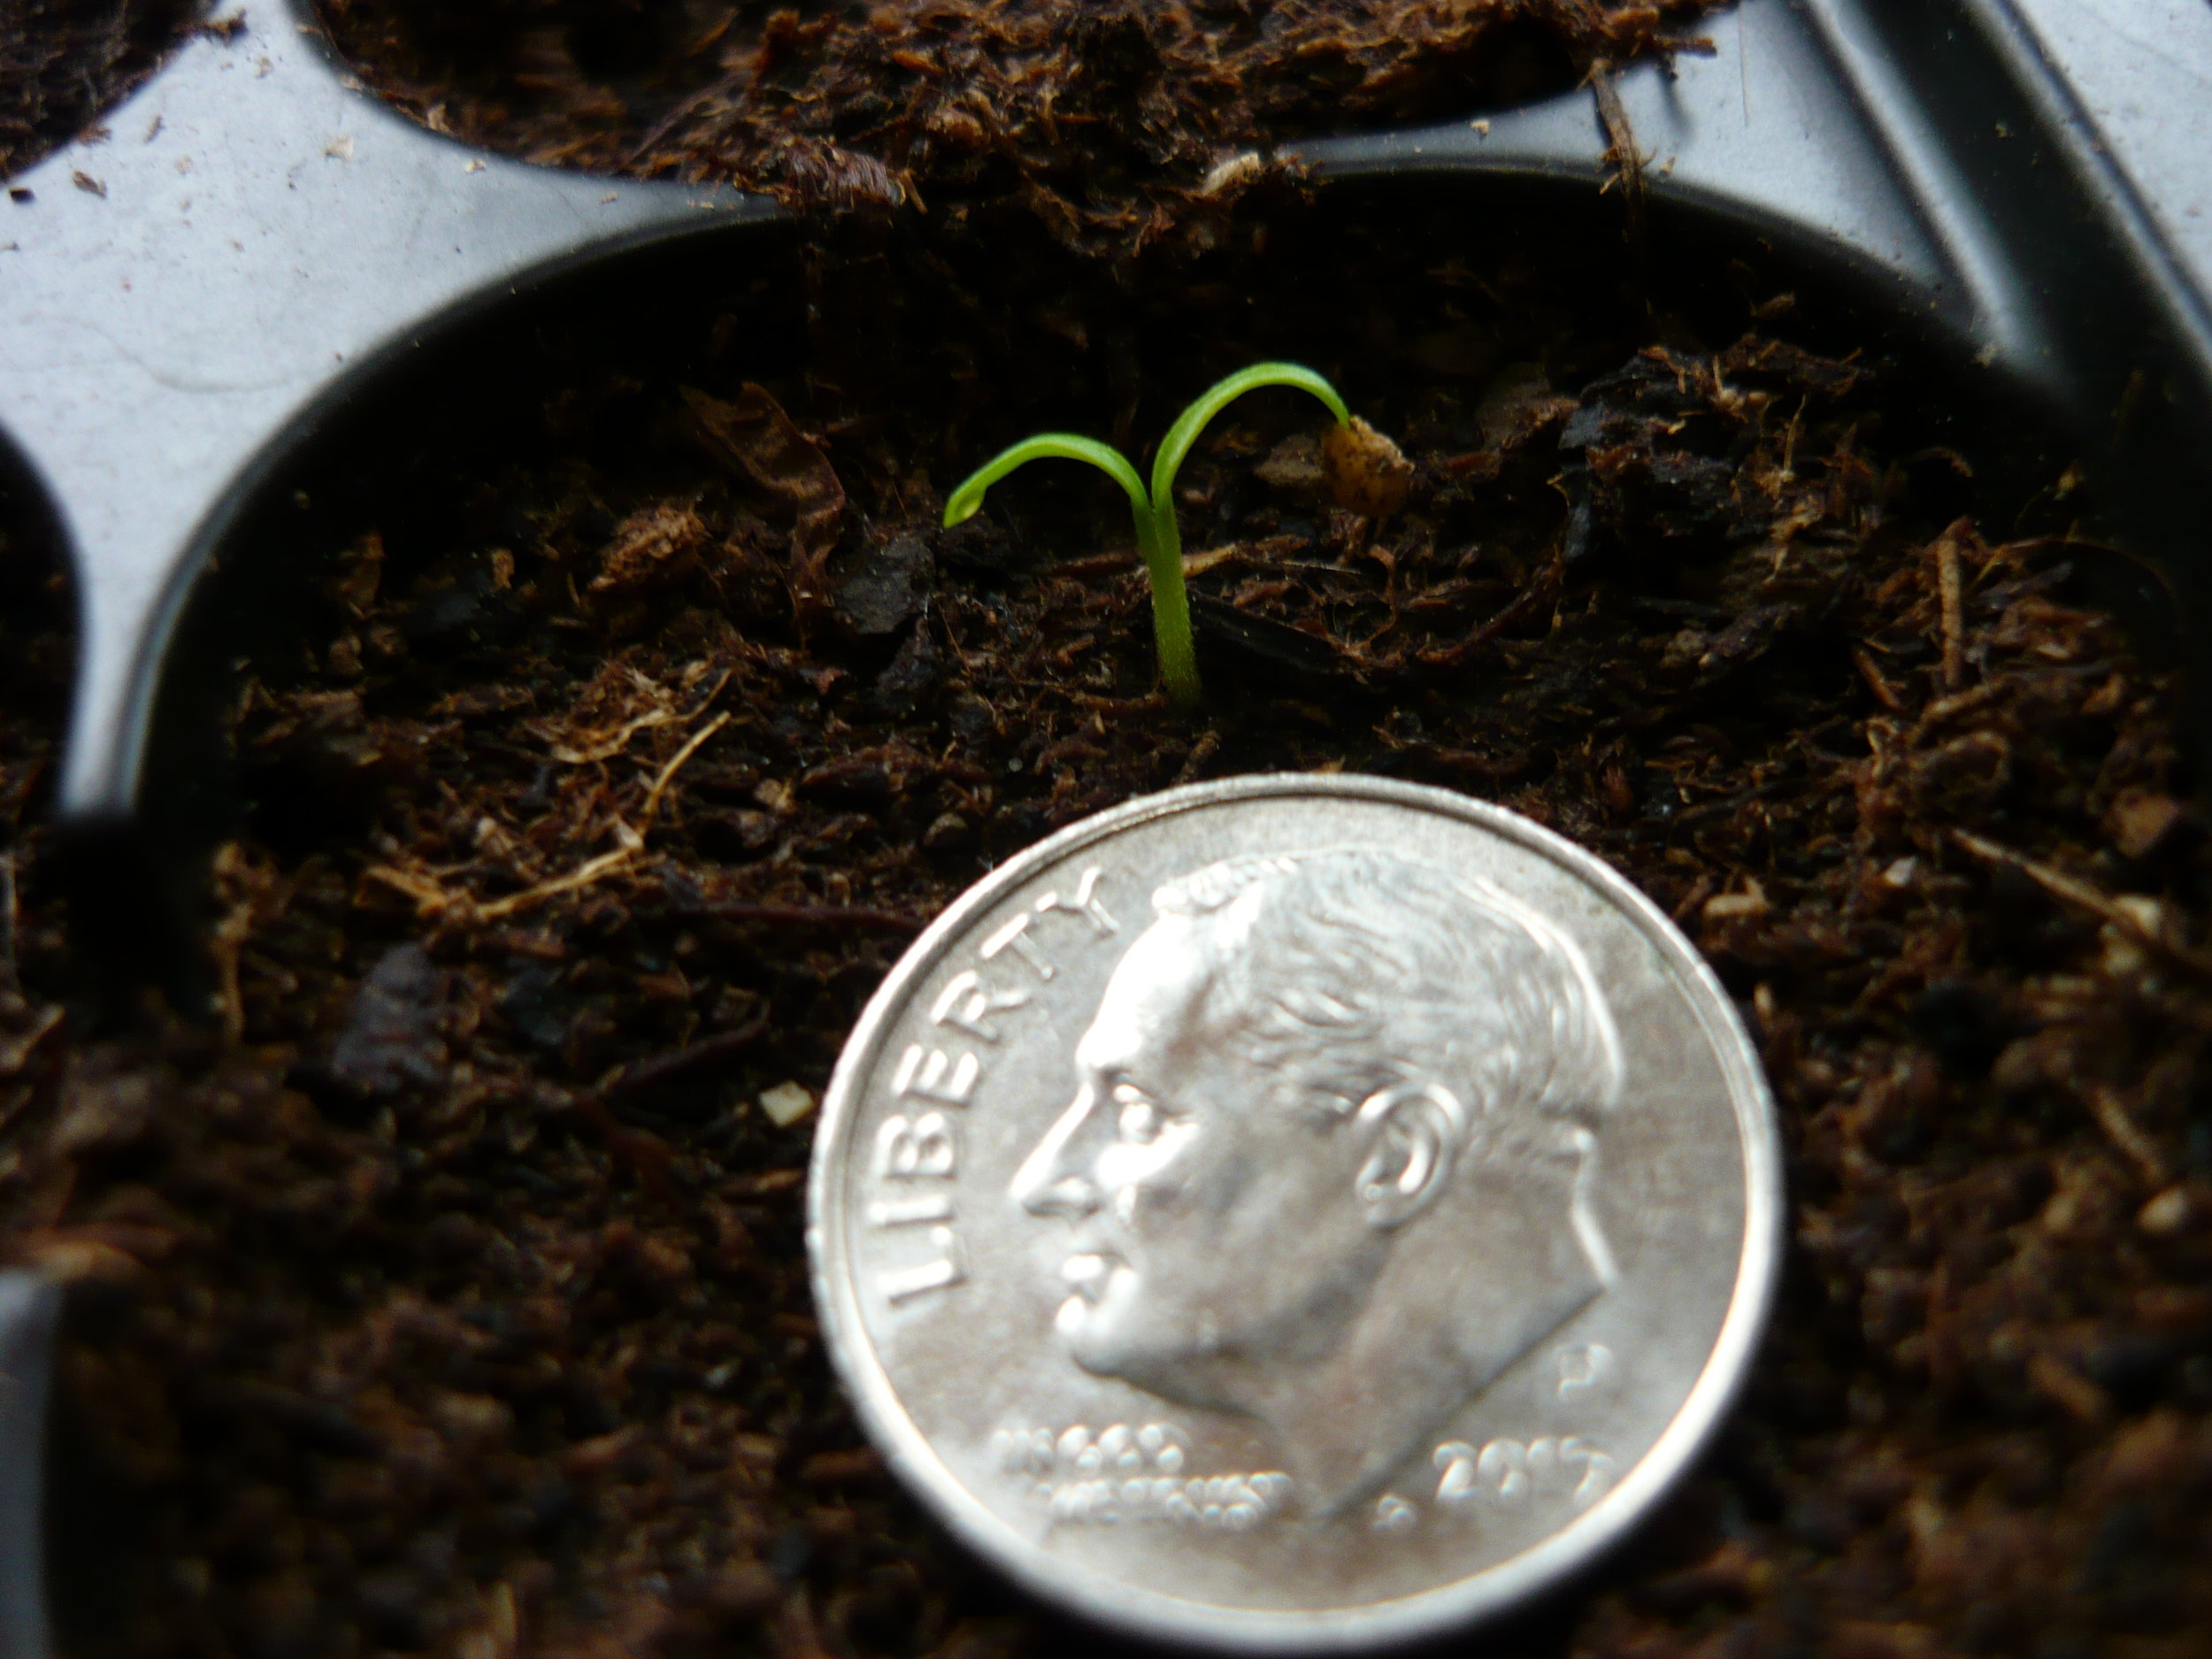 ashwagandha seedling, photo by Richard Herman